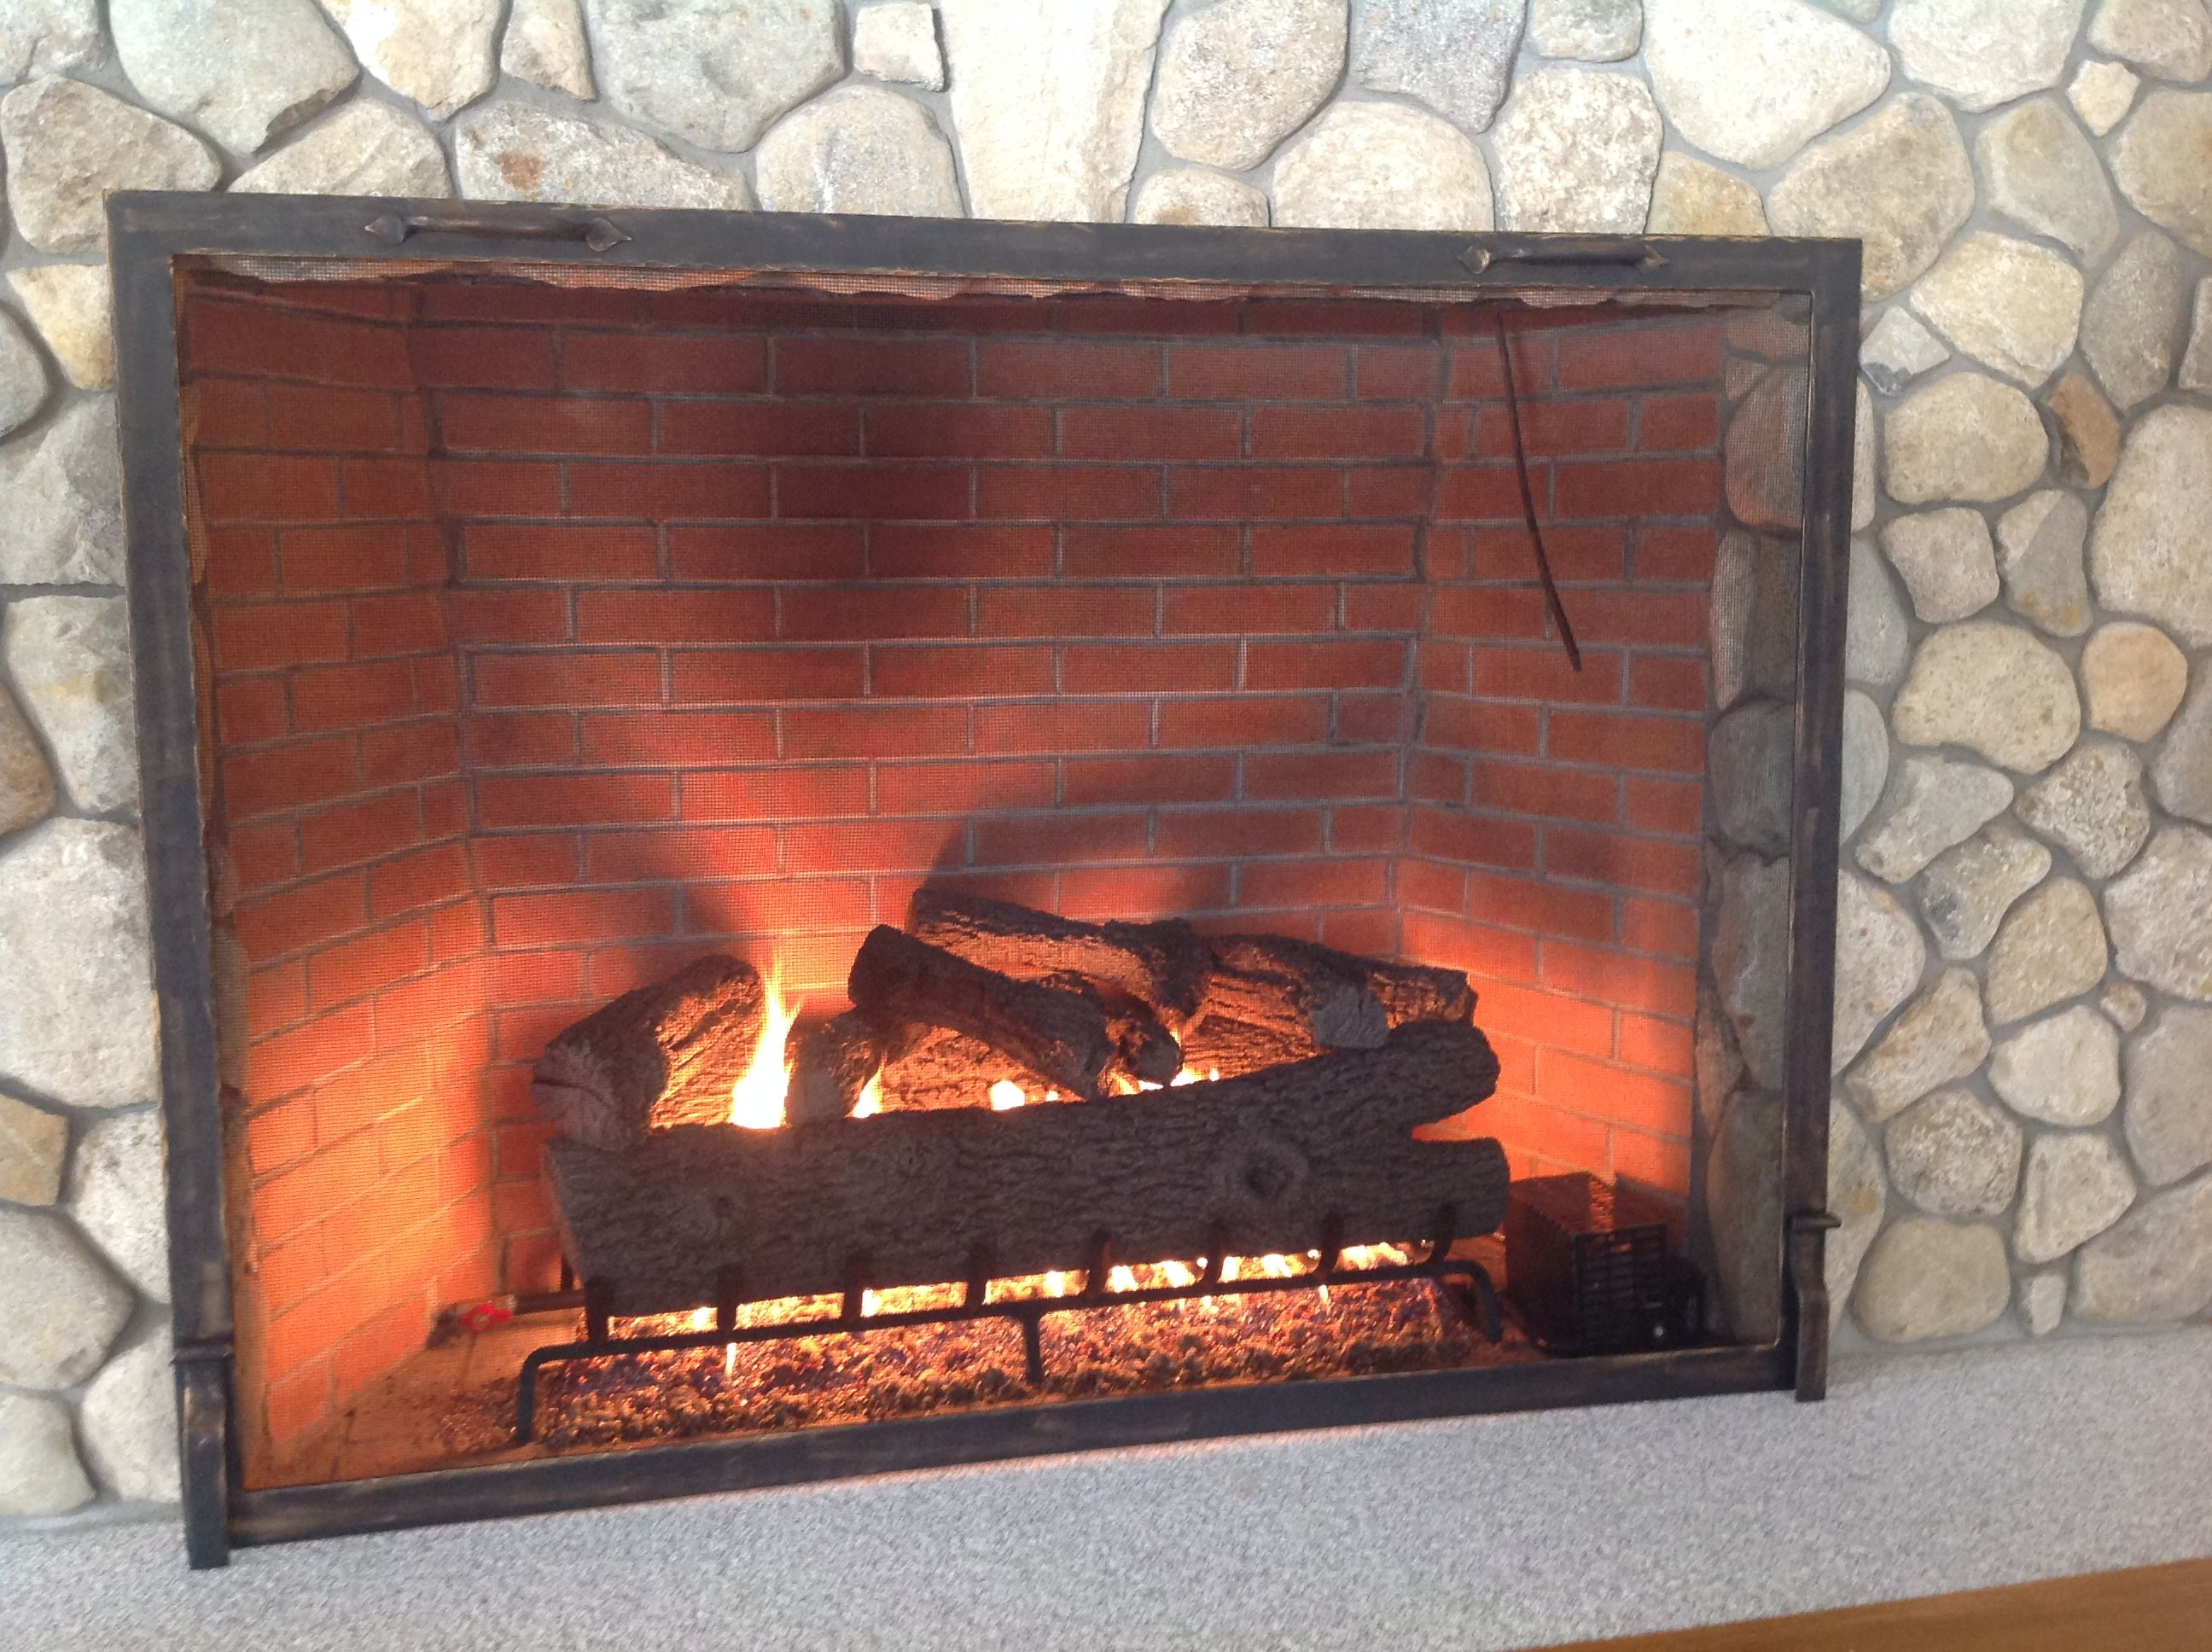 Buy a Hand Made Custom Textured Fireplace Screen made to order from Iron It Out  CustomMadecom